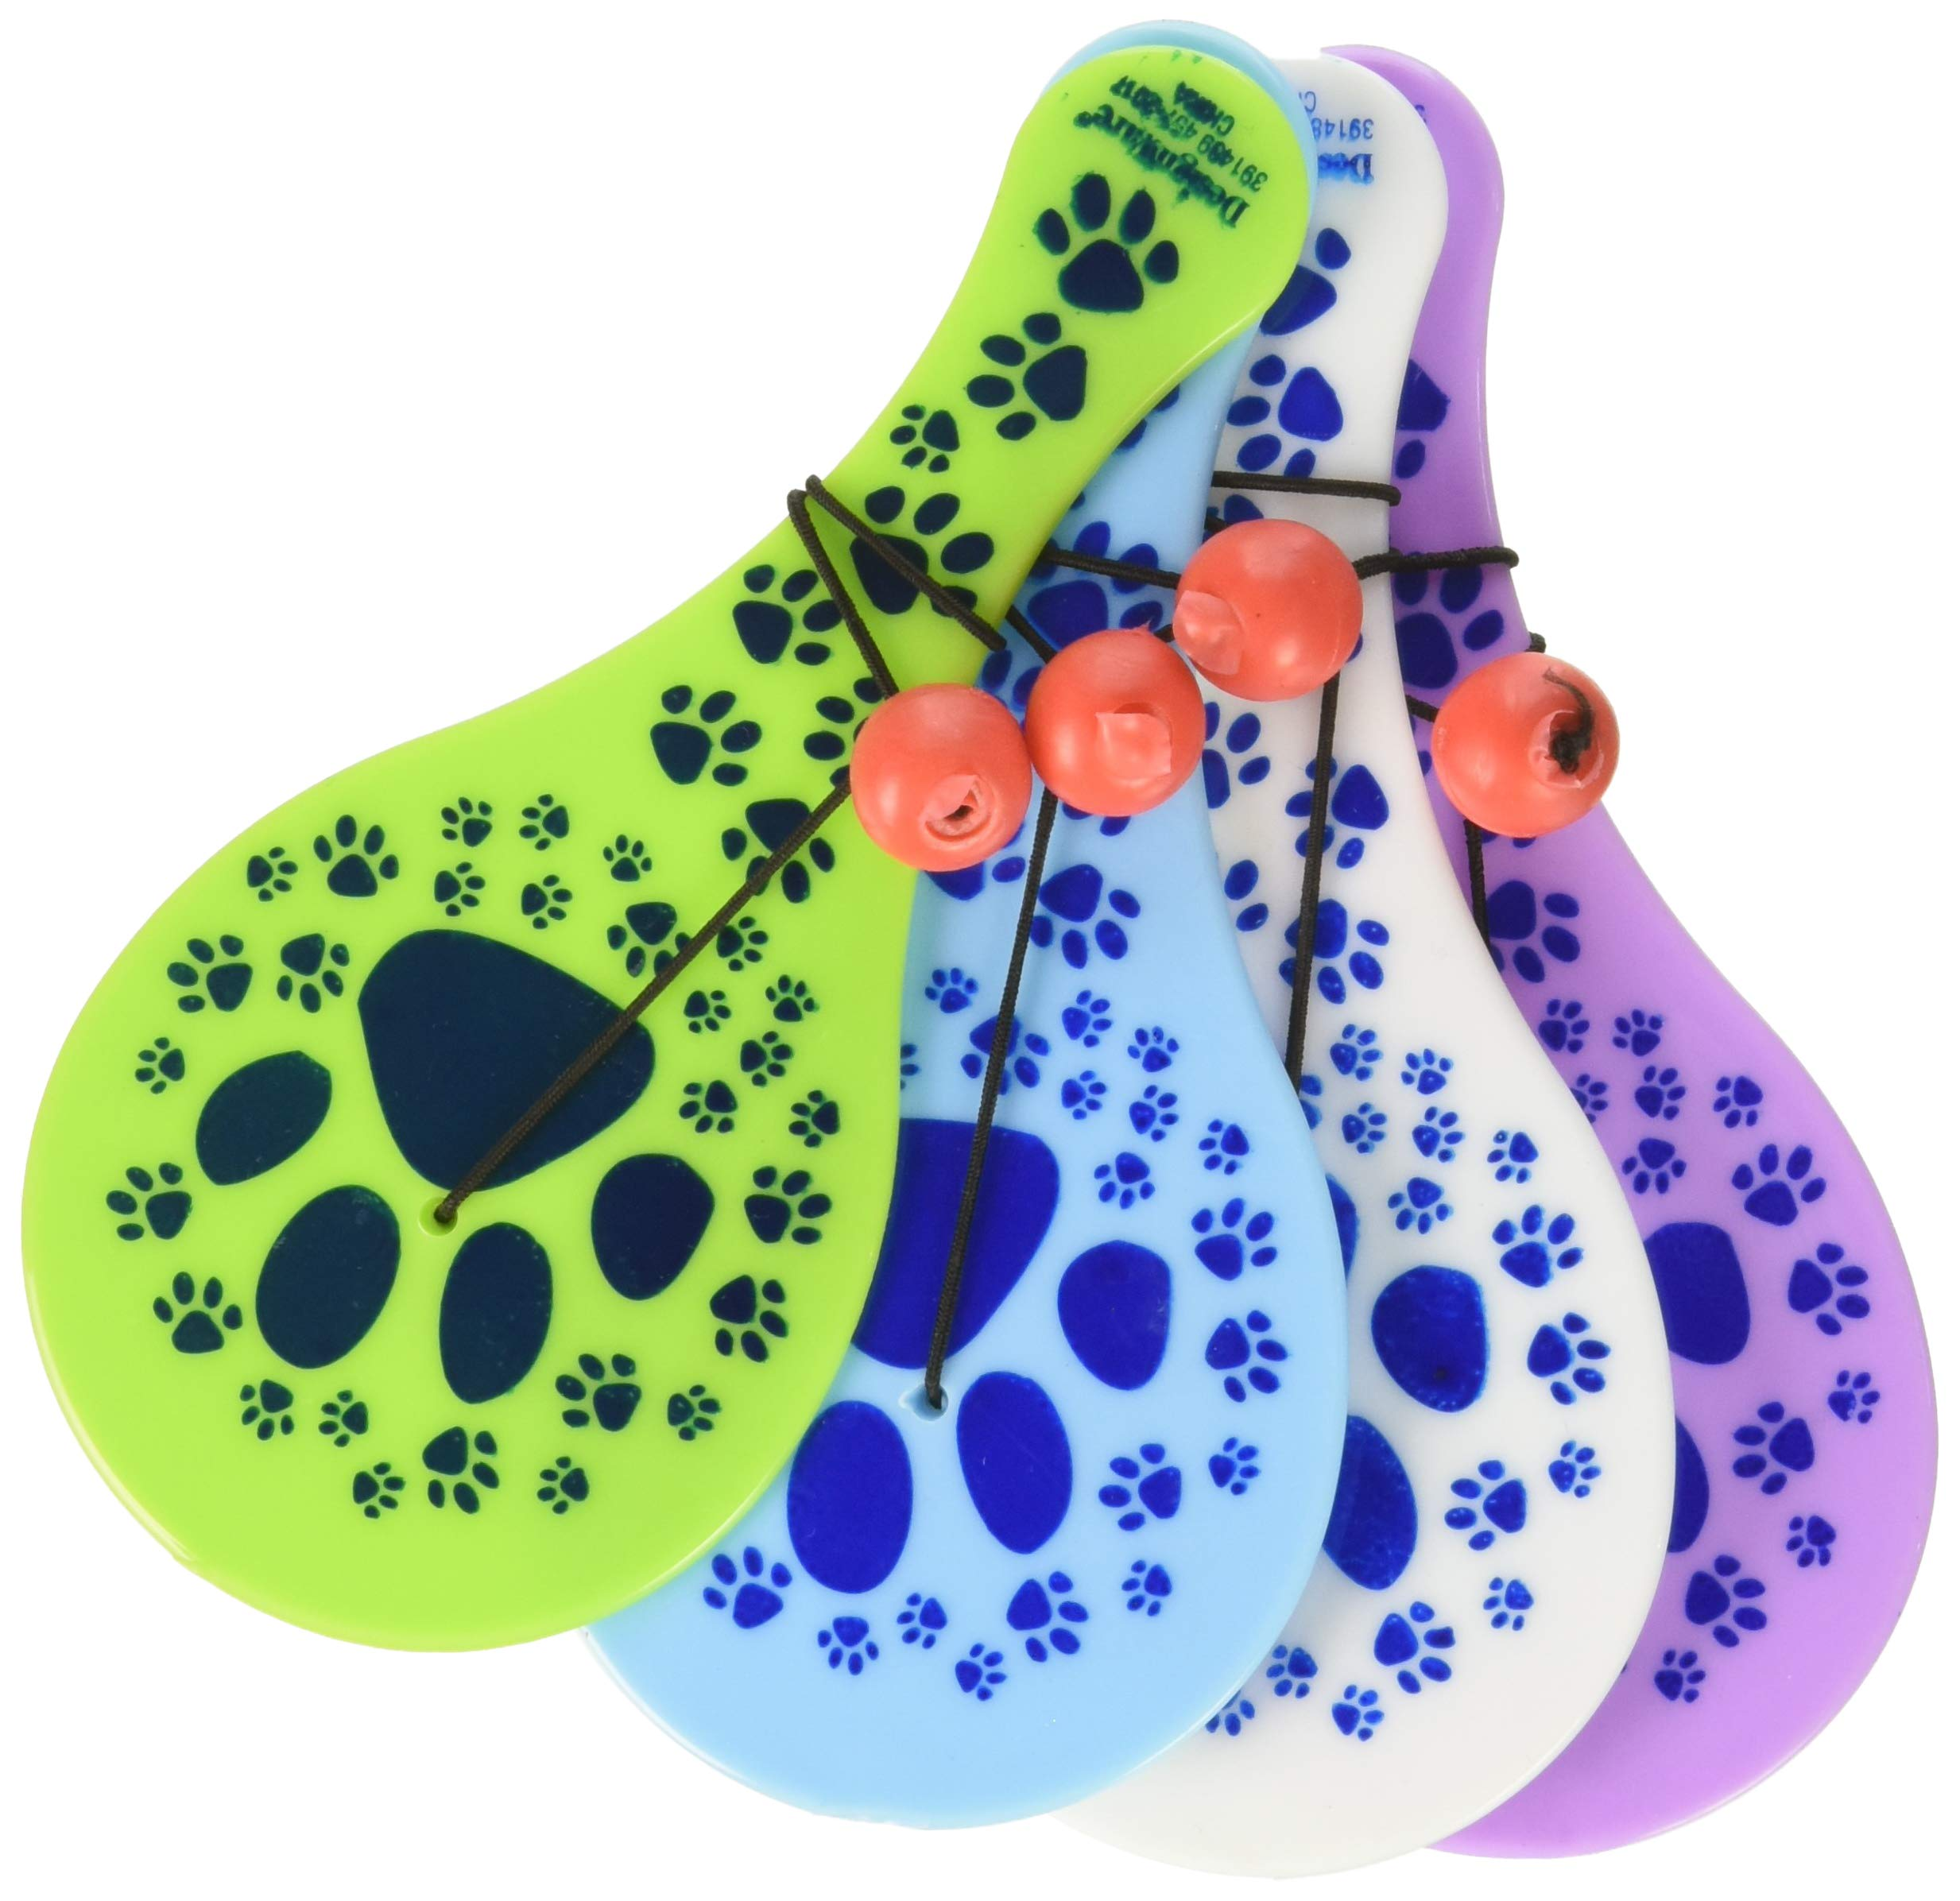 Amscan 391489 Cute Party Pups Paddle Ball Birthday Party Favours Toy & Prize Giveaway (12 Pack), Multi Color; 5 3/4 x 7 1/2